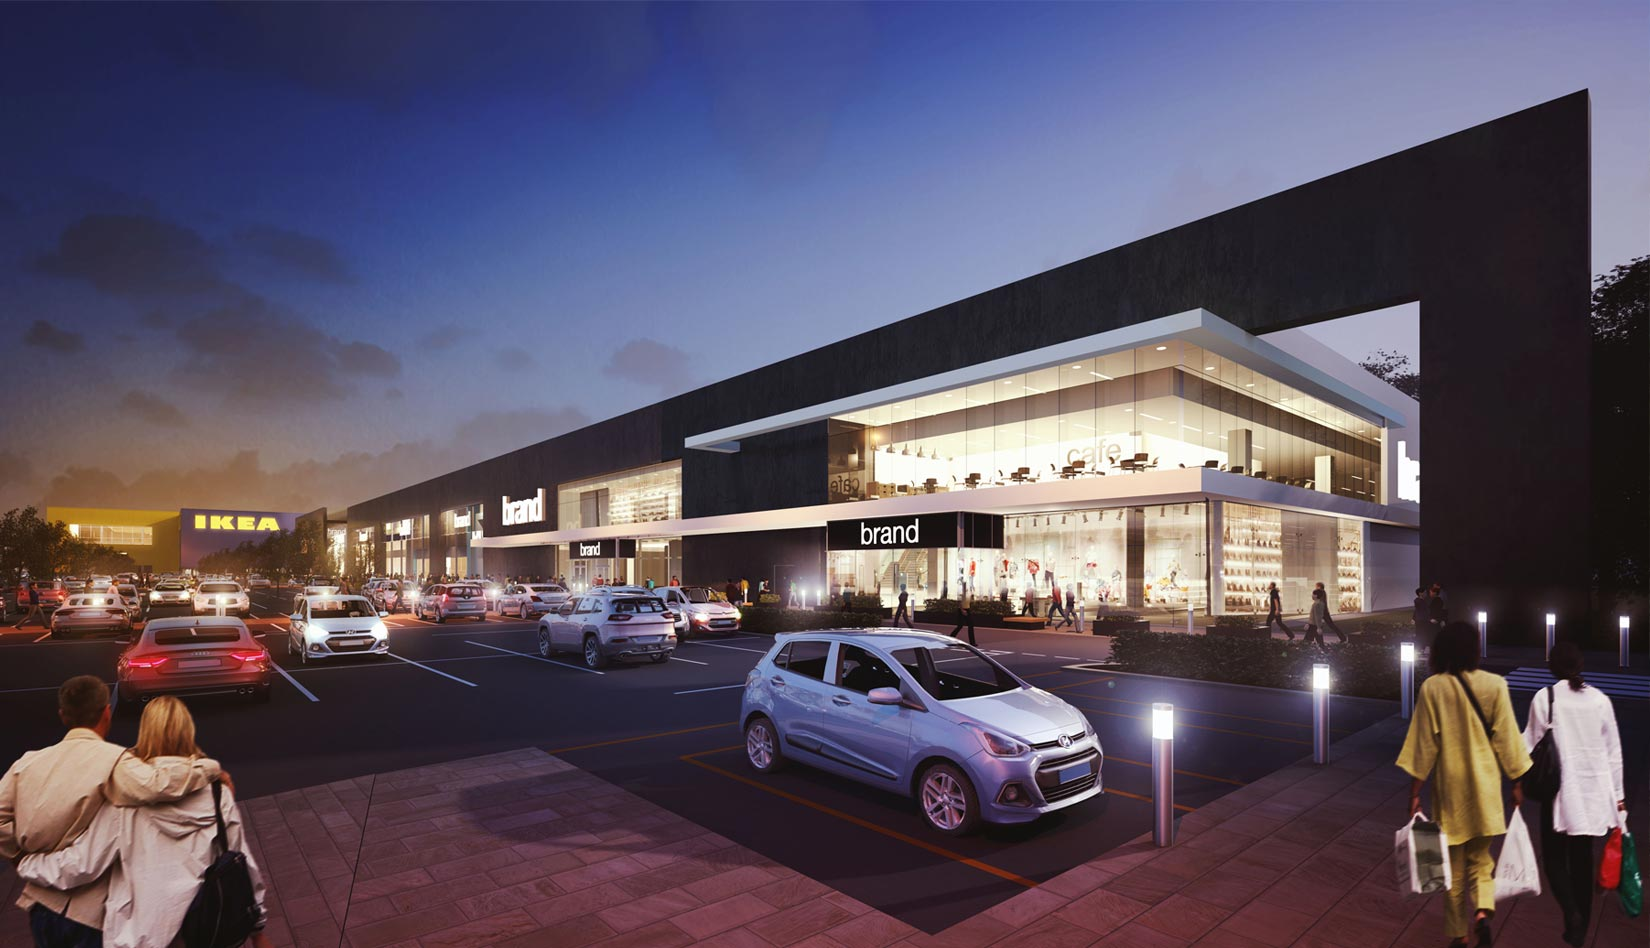 Shopping Park, Central Lancashire, 3D Visual of proposed IKEA Store & Retail Units at night